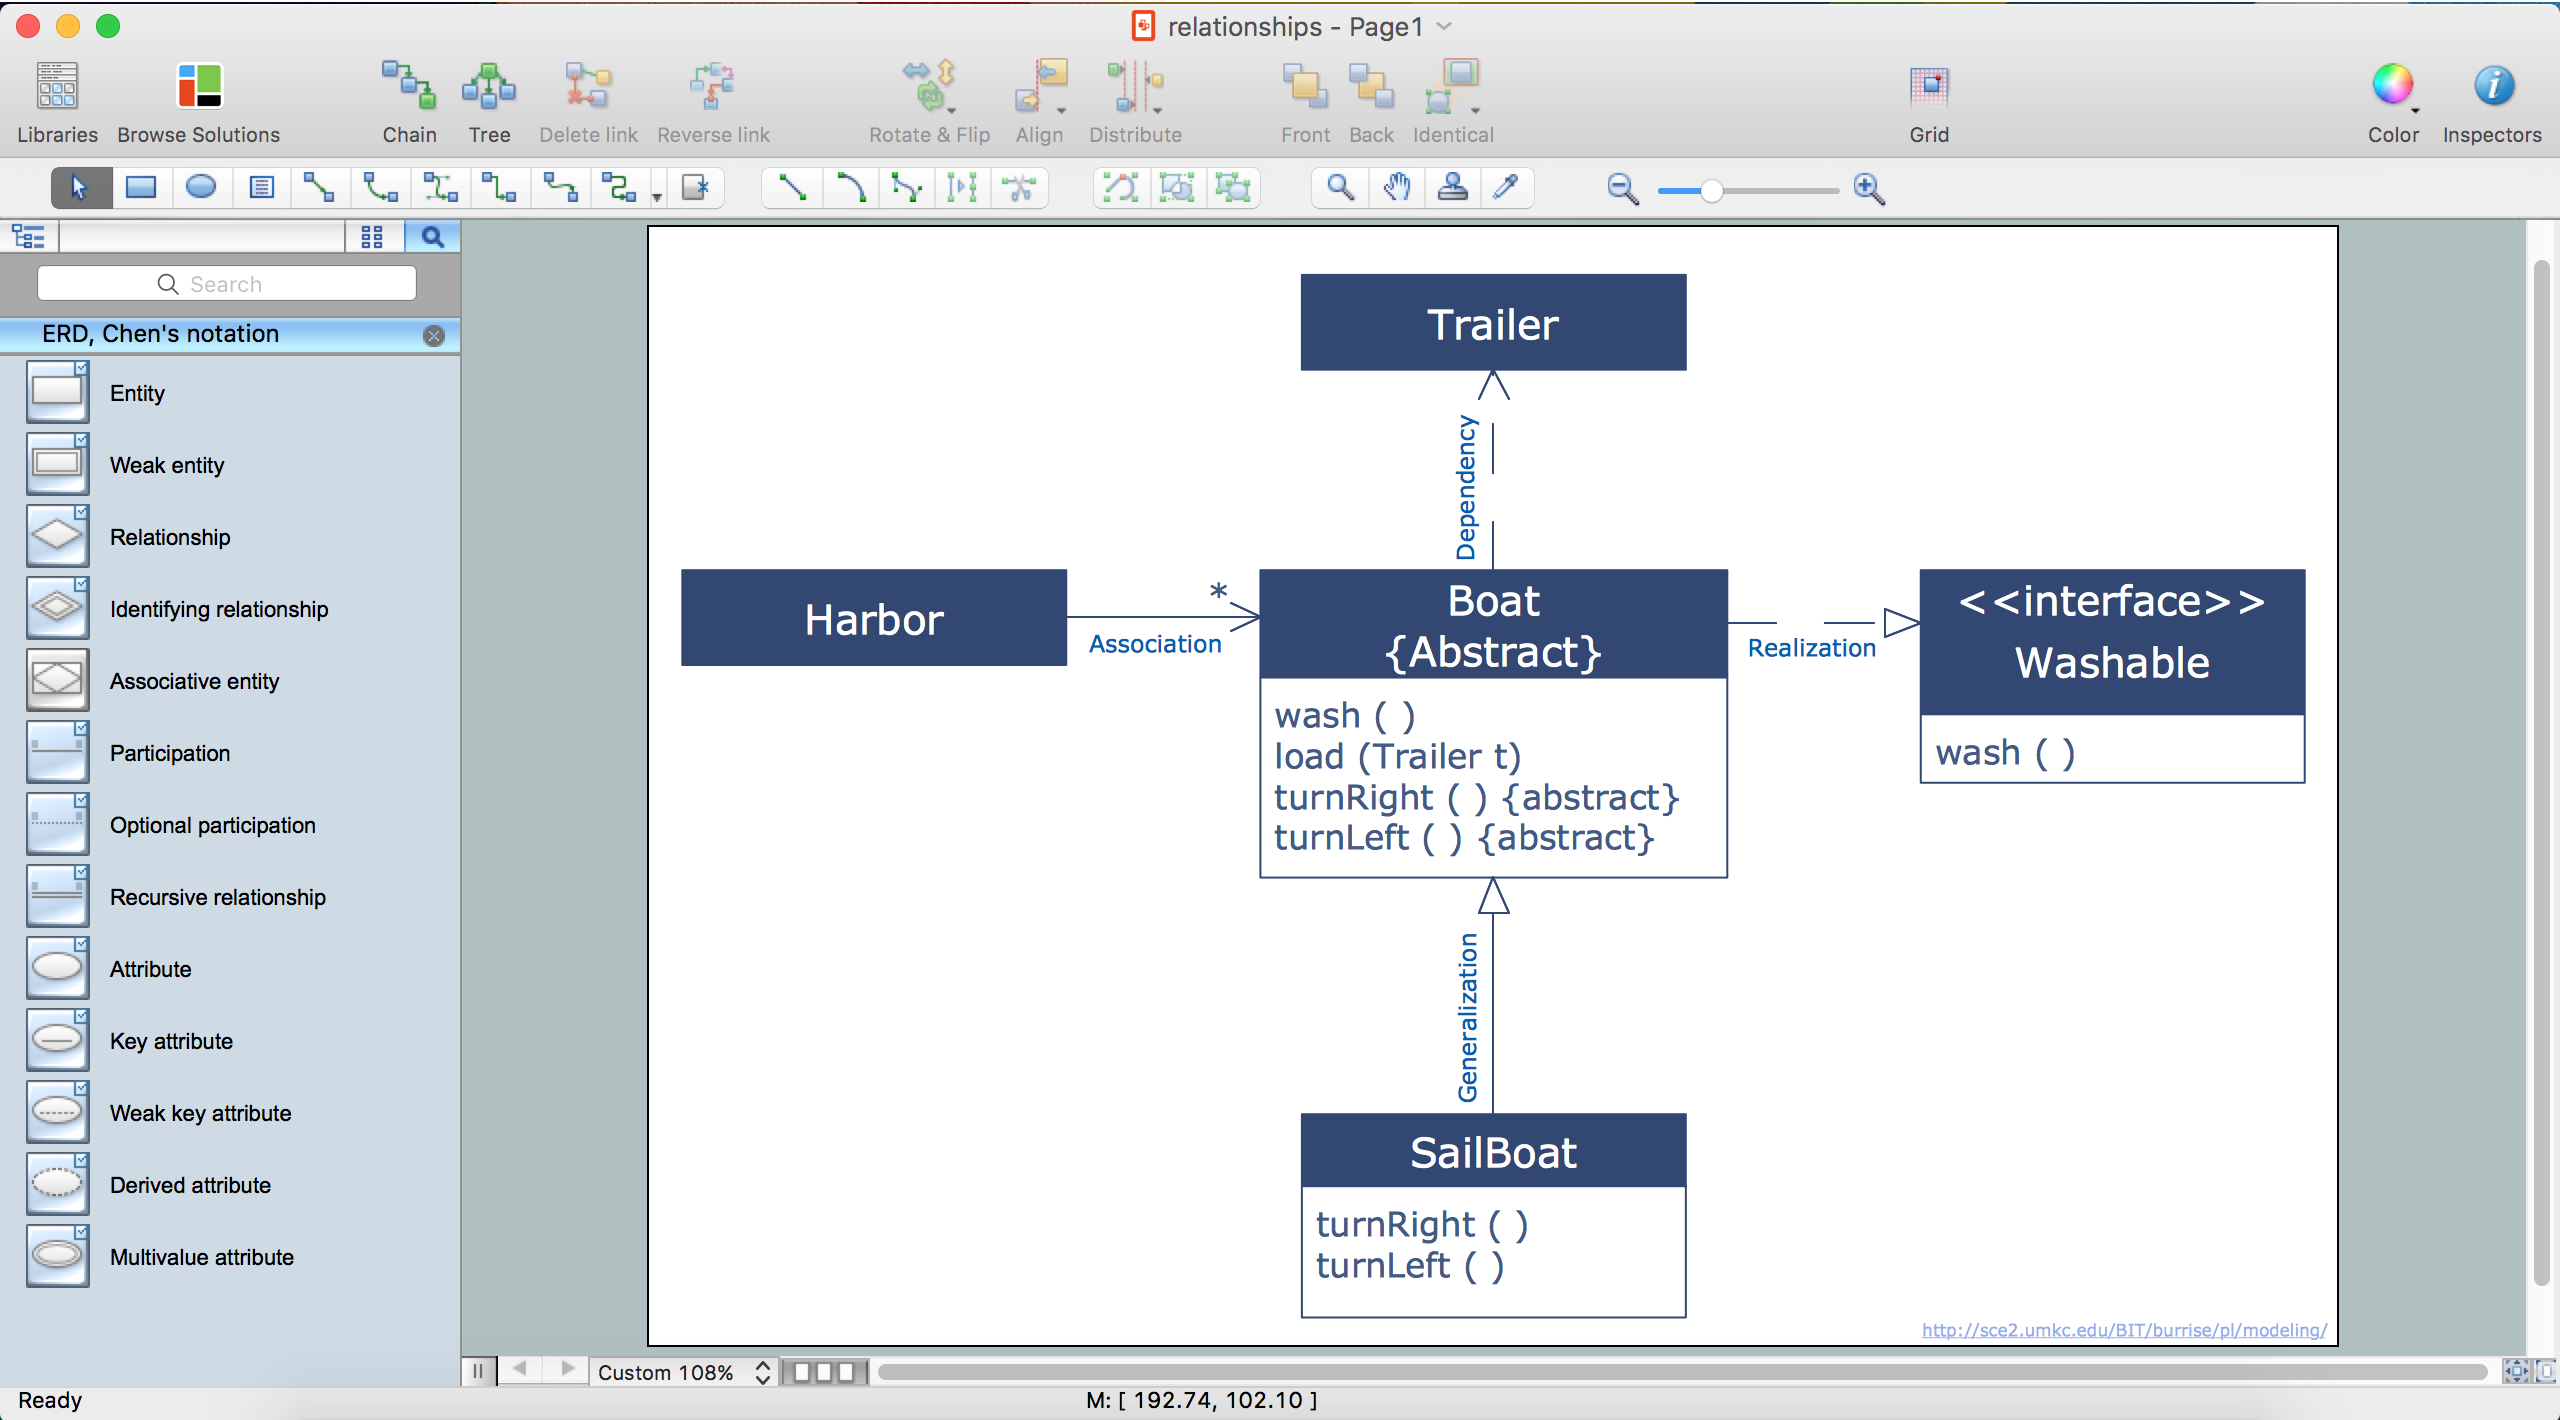 The Best 25 Entity Relationship Diagram Visio References